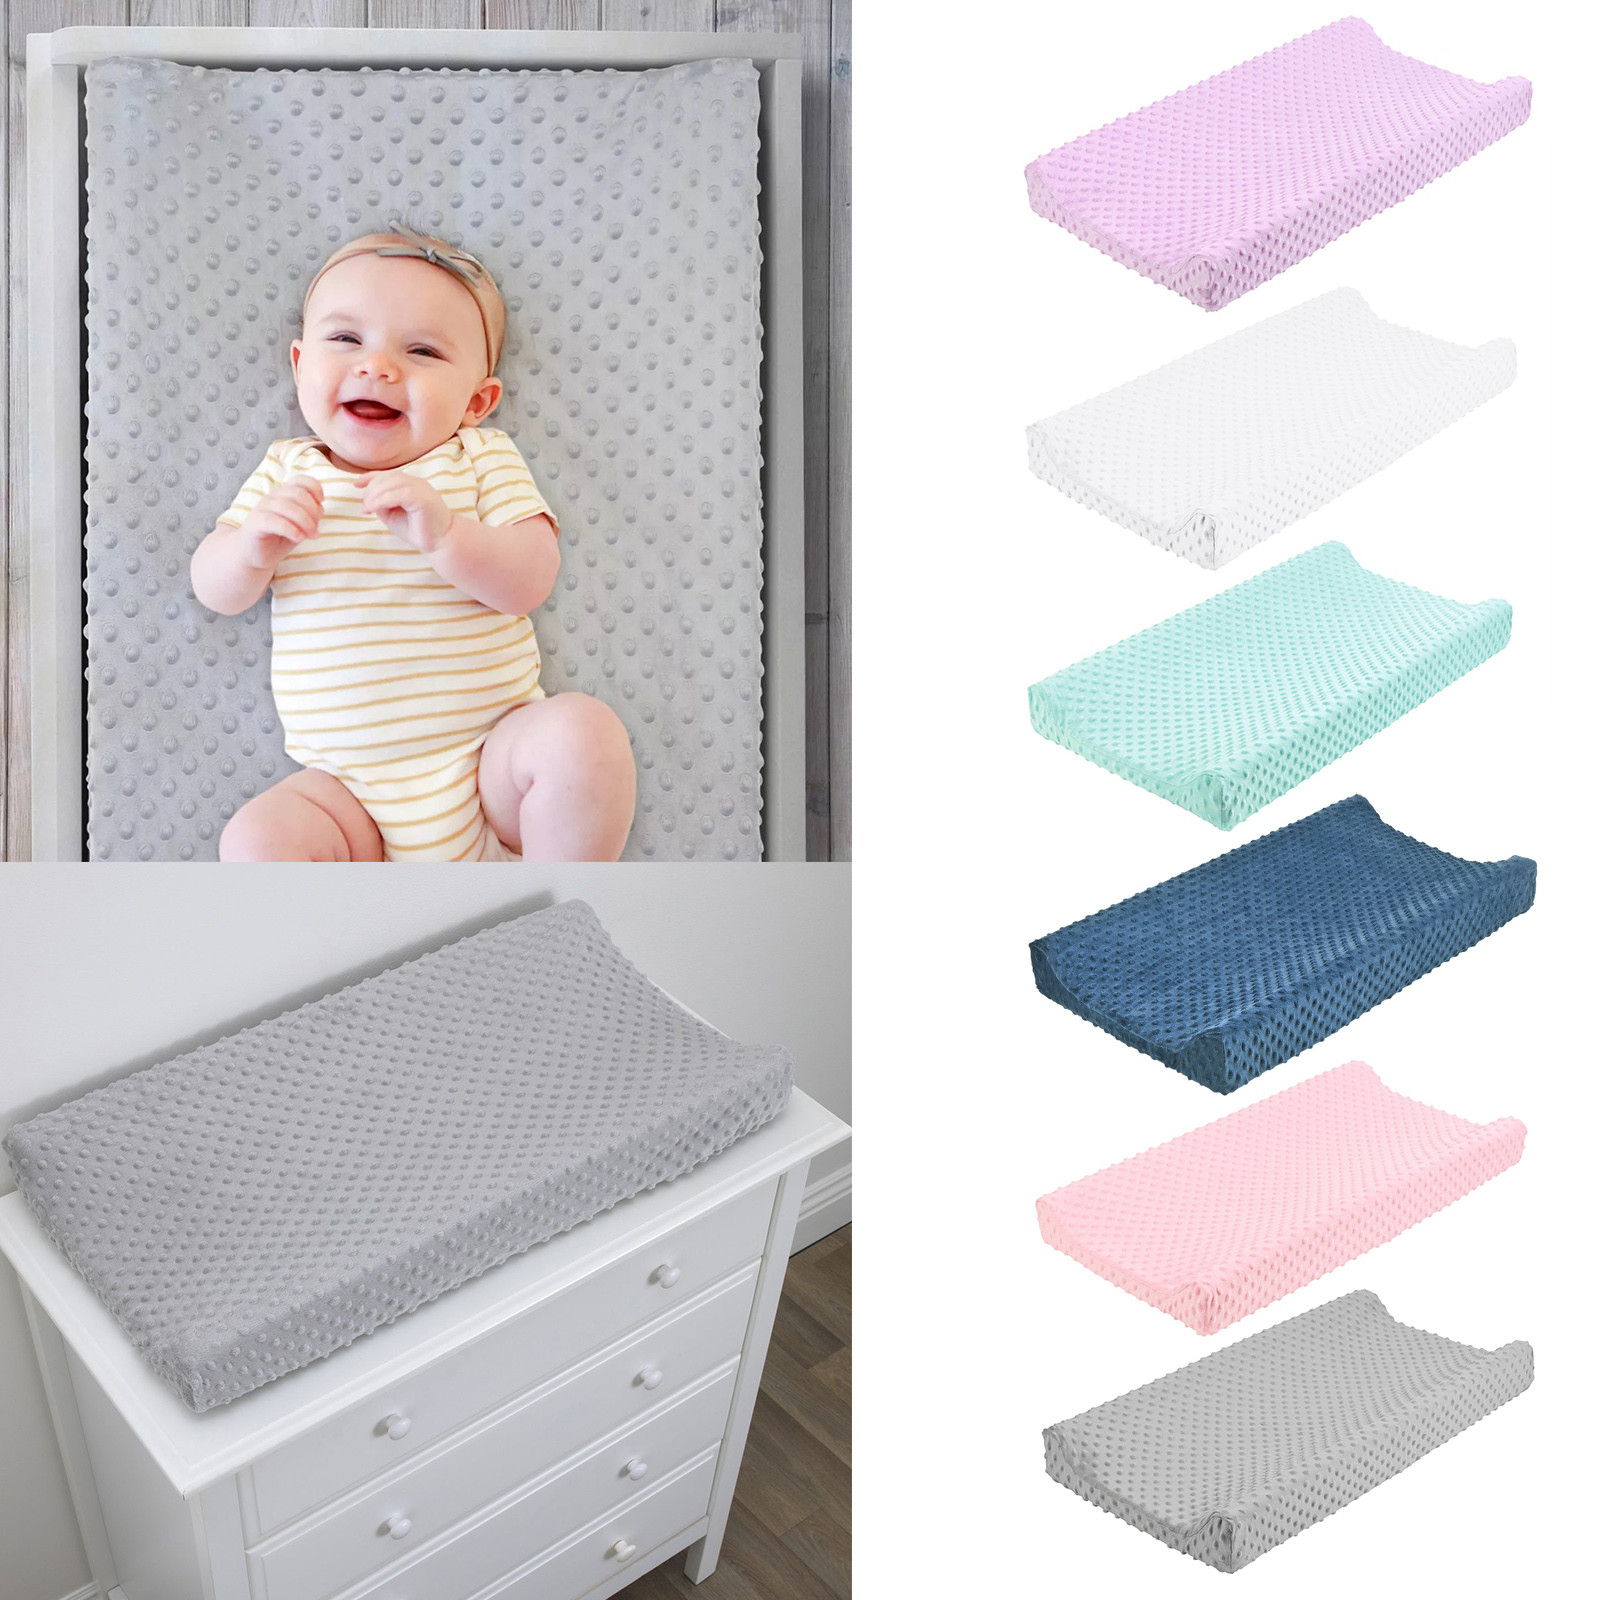 Baby Nursery Diaper baby diapers Changing Pad Cover Changing Mat Cover Changing Table Cover Baby Changing Mat Cambiador Baby